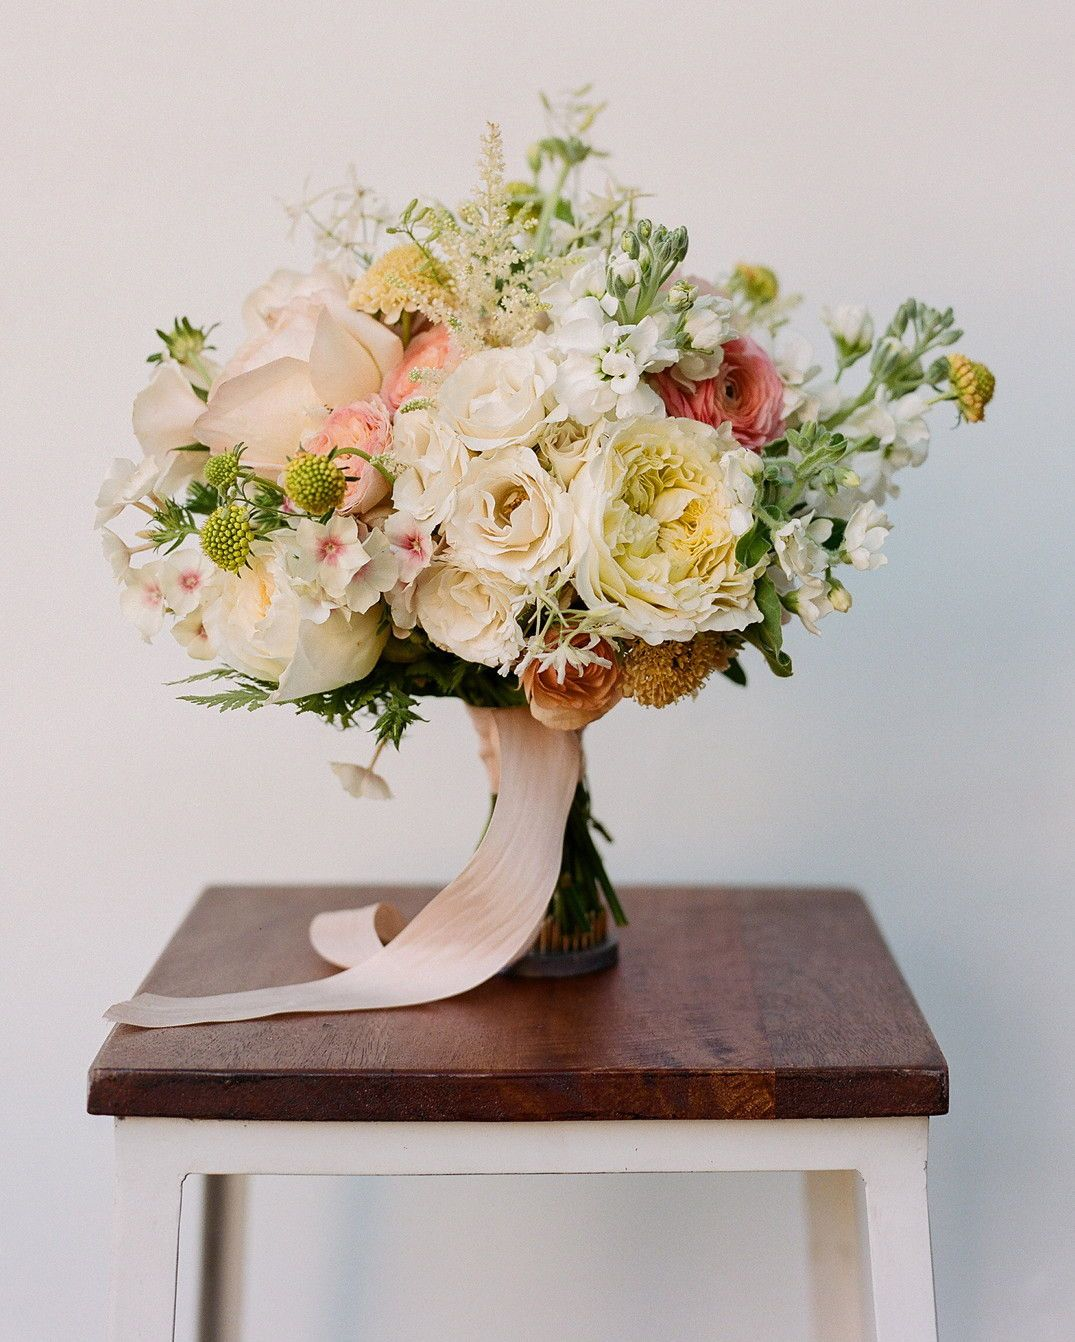 Wedding Flowers Bridal Bouquet Prices: Rose Wedding Bouquets For Every Budget—from $100 To $500